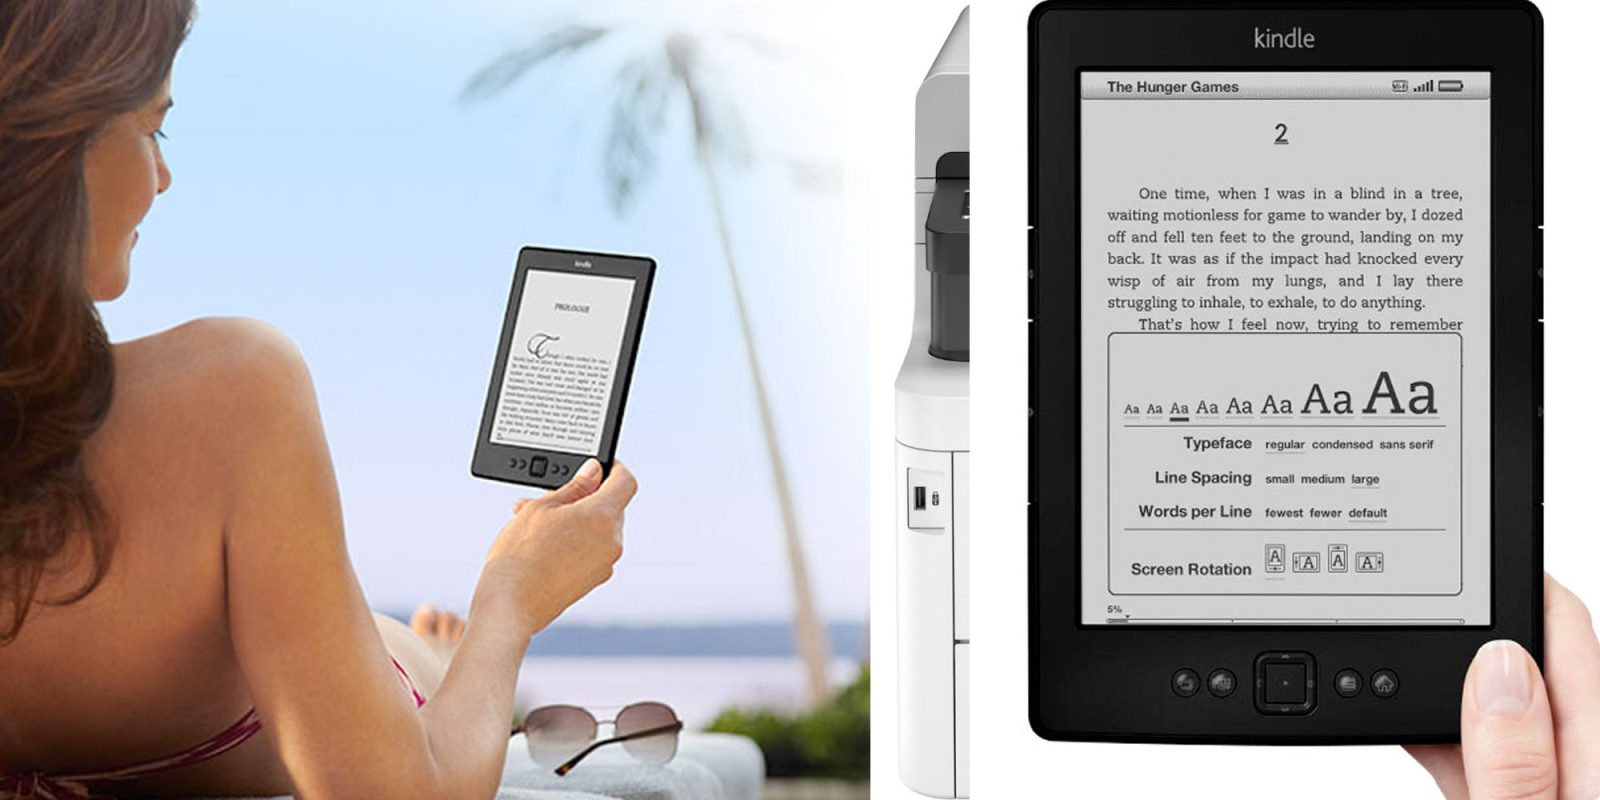 Get an Amazon Kindle w/ 6-inch E-ink display for just $25